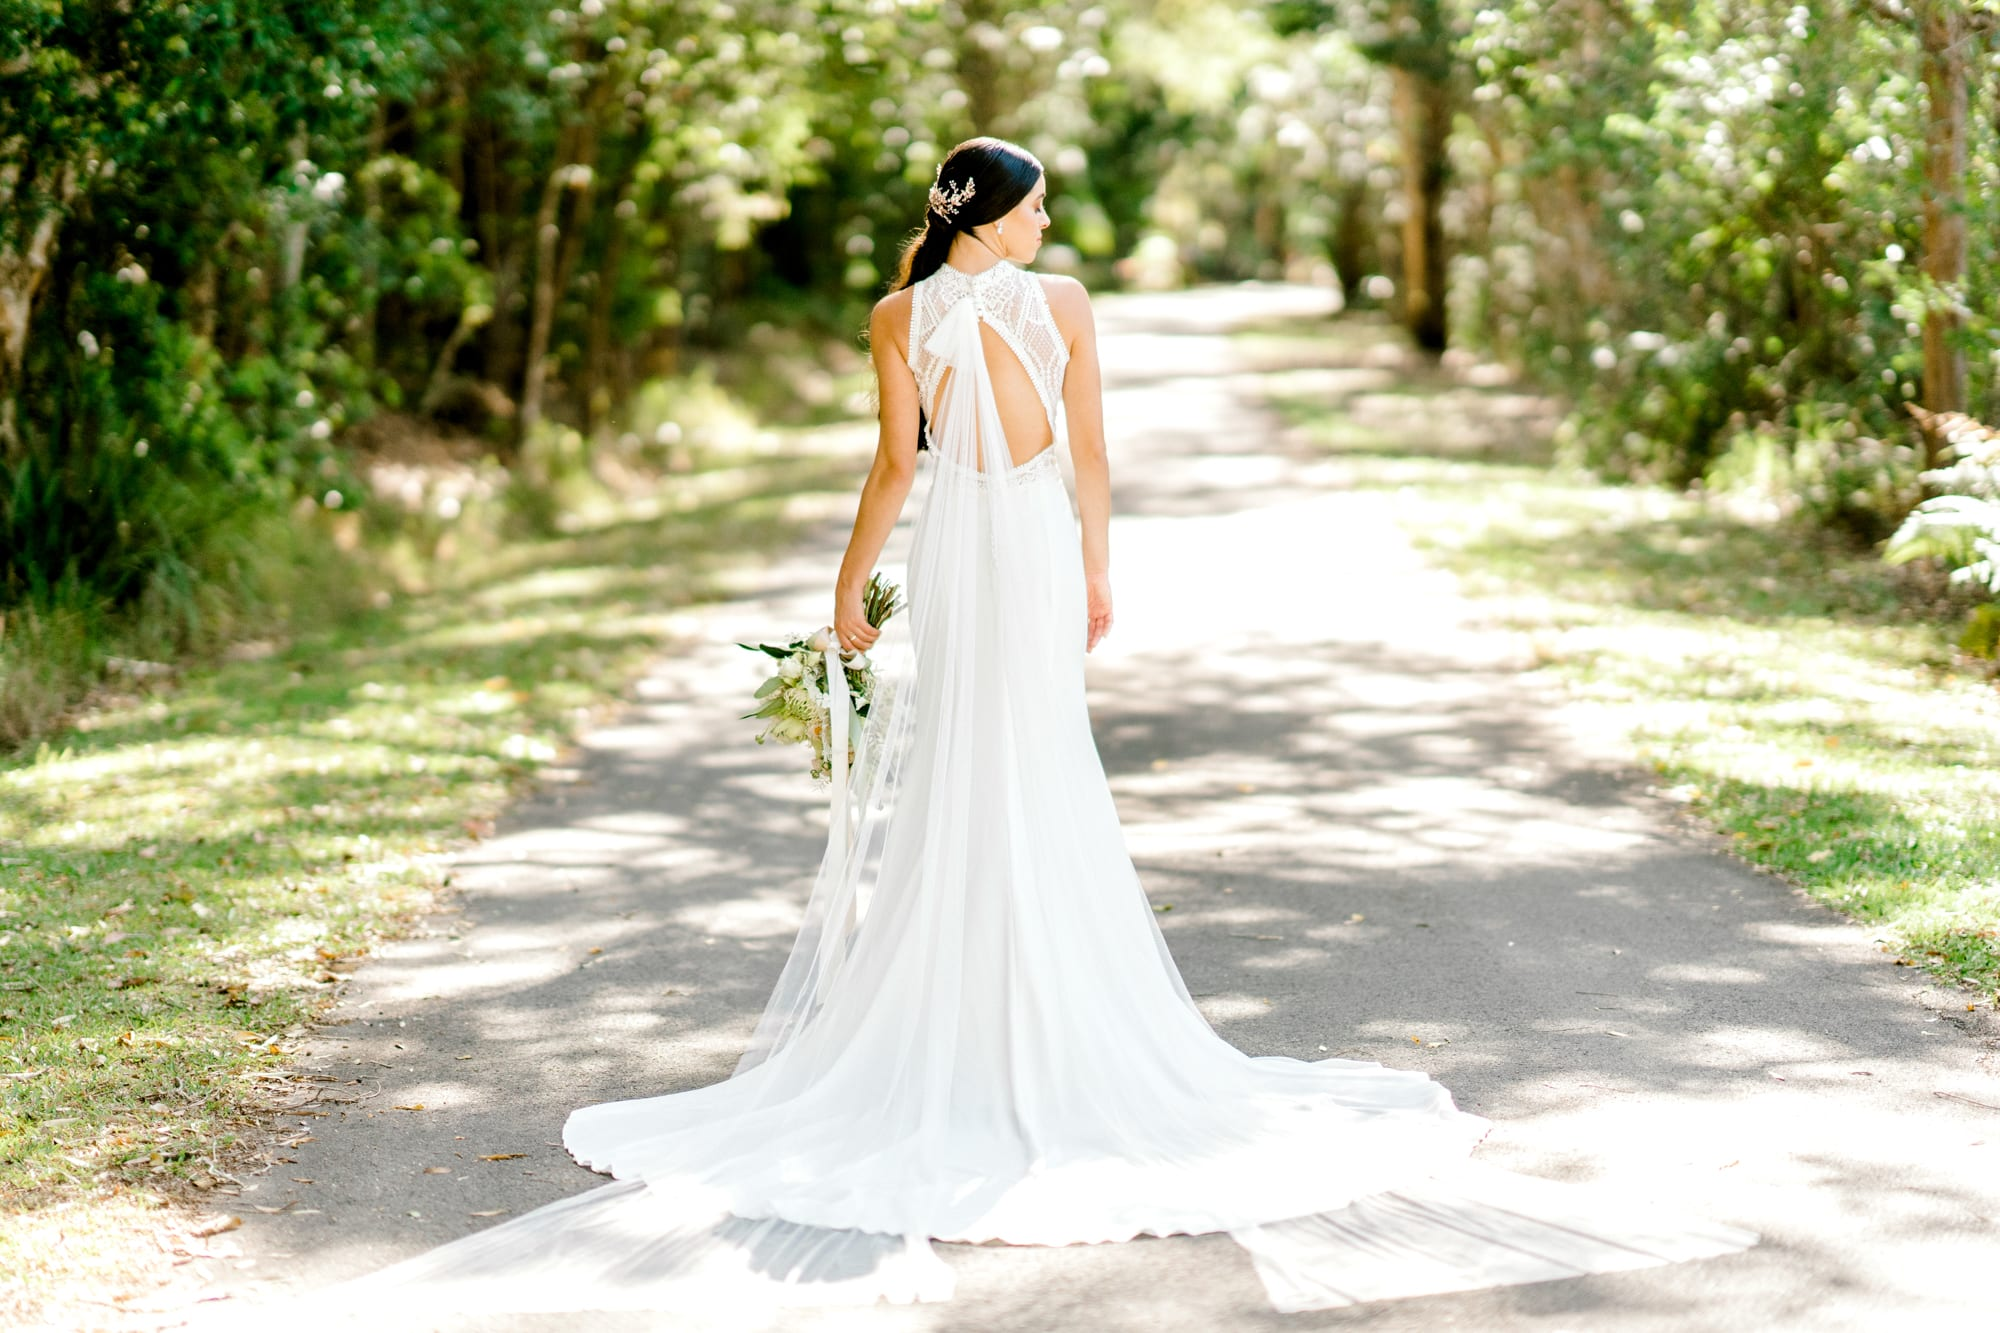 TAMESIS-Rosa-Clara-High-Neck-Low-Back-Wedding-Gown-White-Lily-Couture-Brisbane (11)